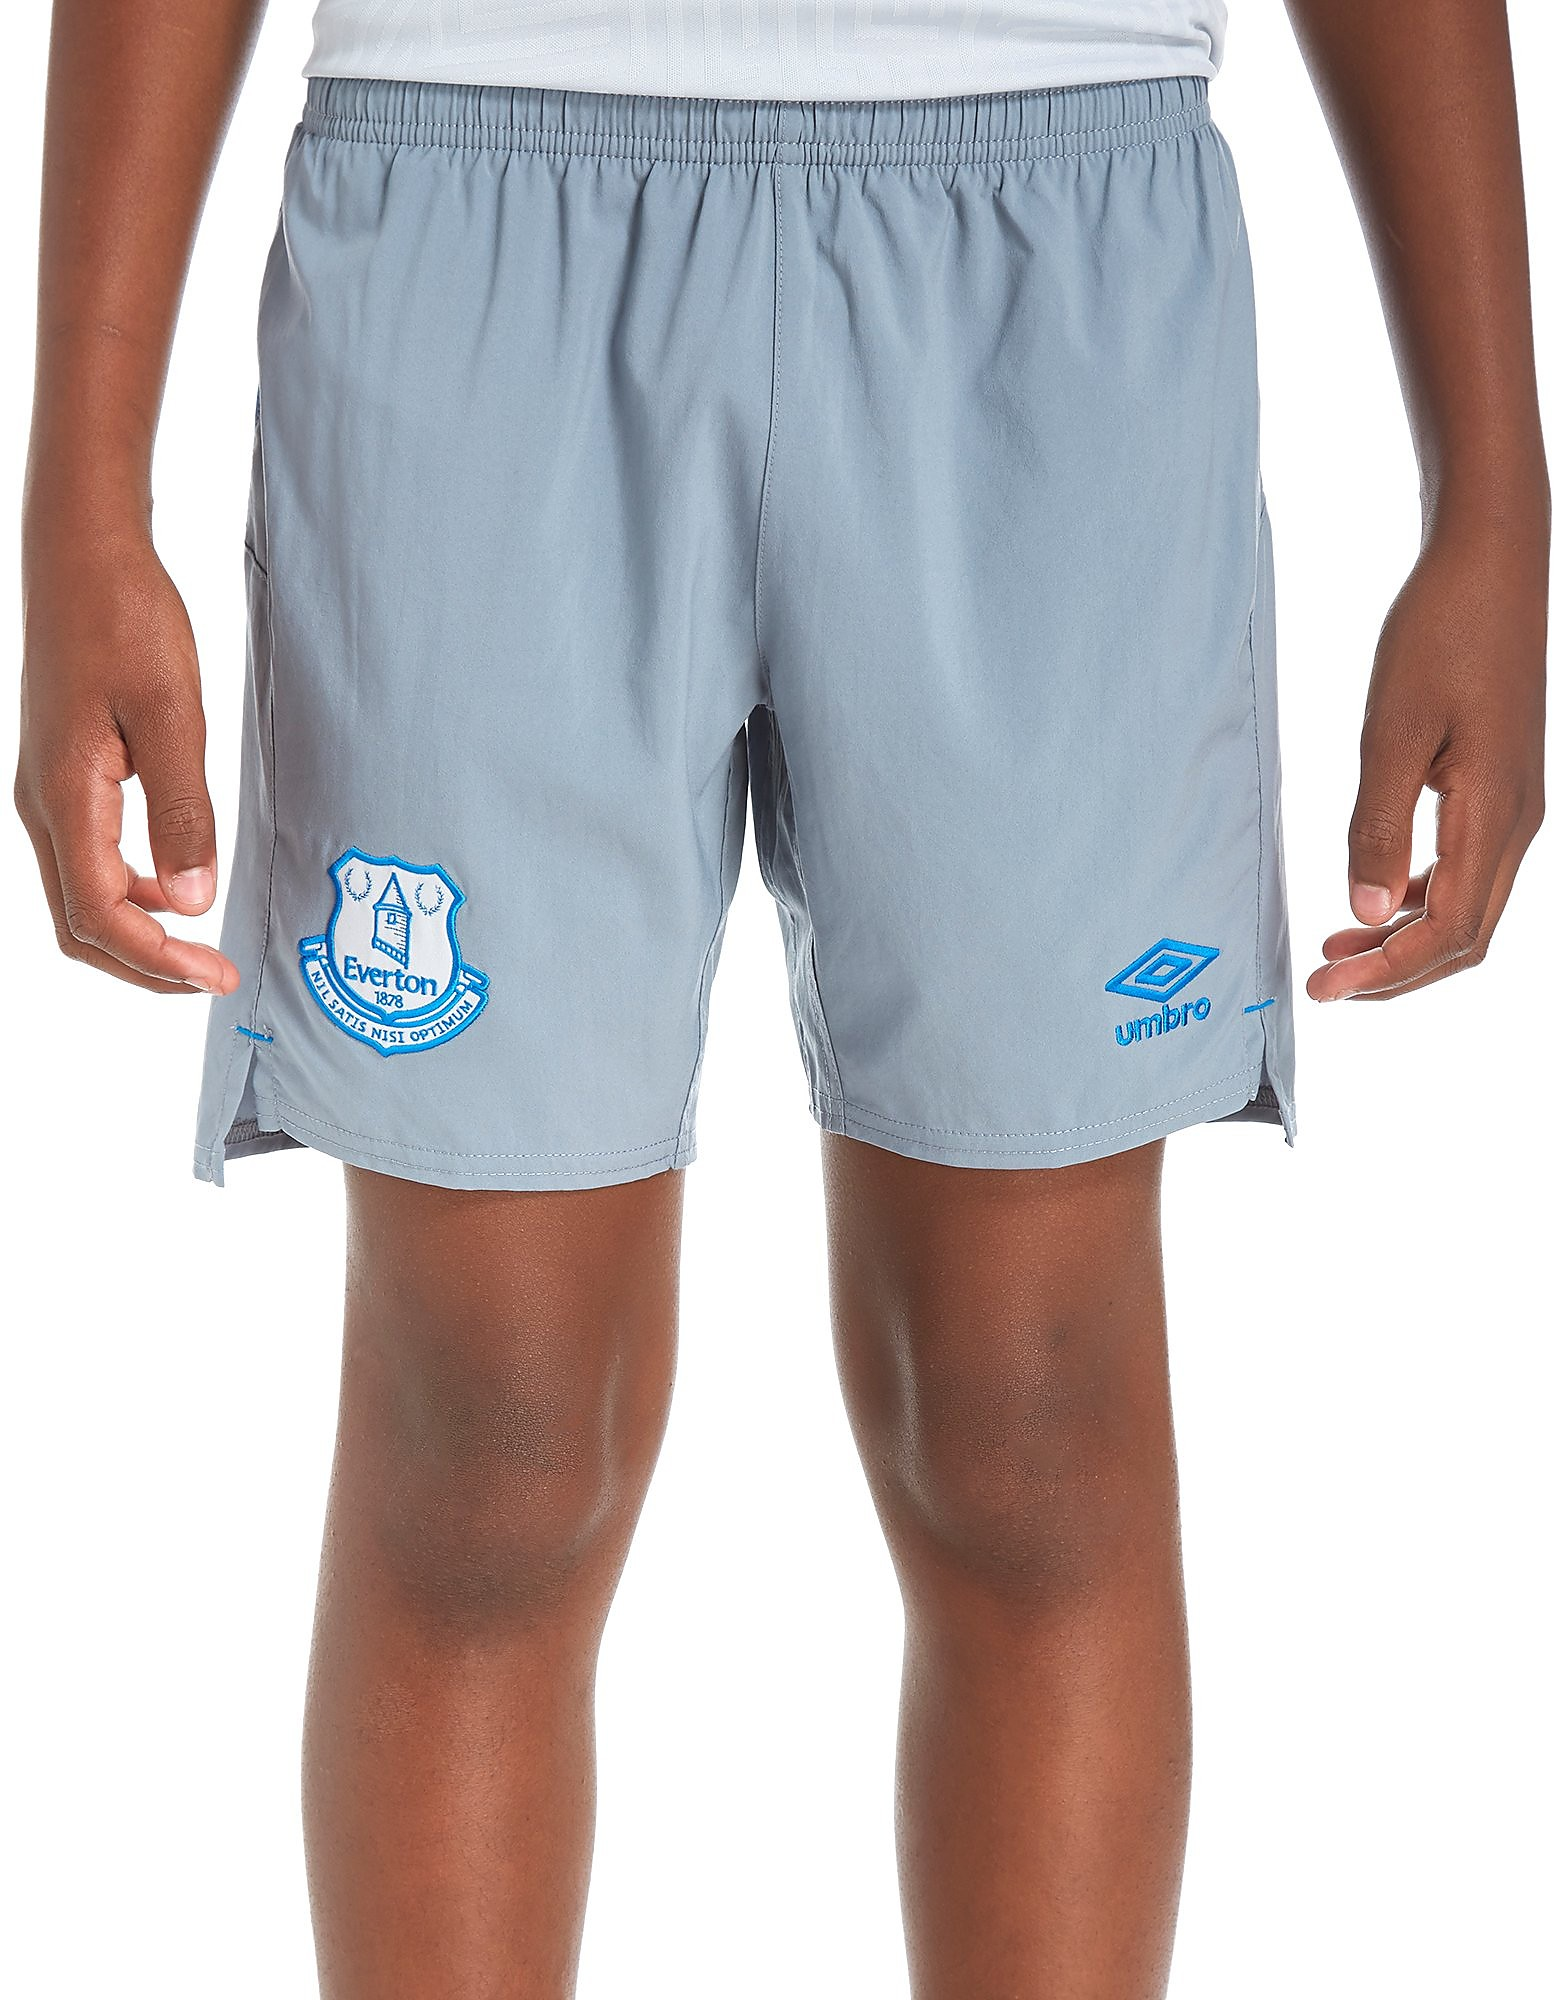 Umbro Everton FC 2017/18 Away Shorts Junior